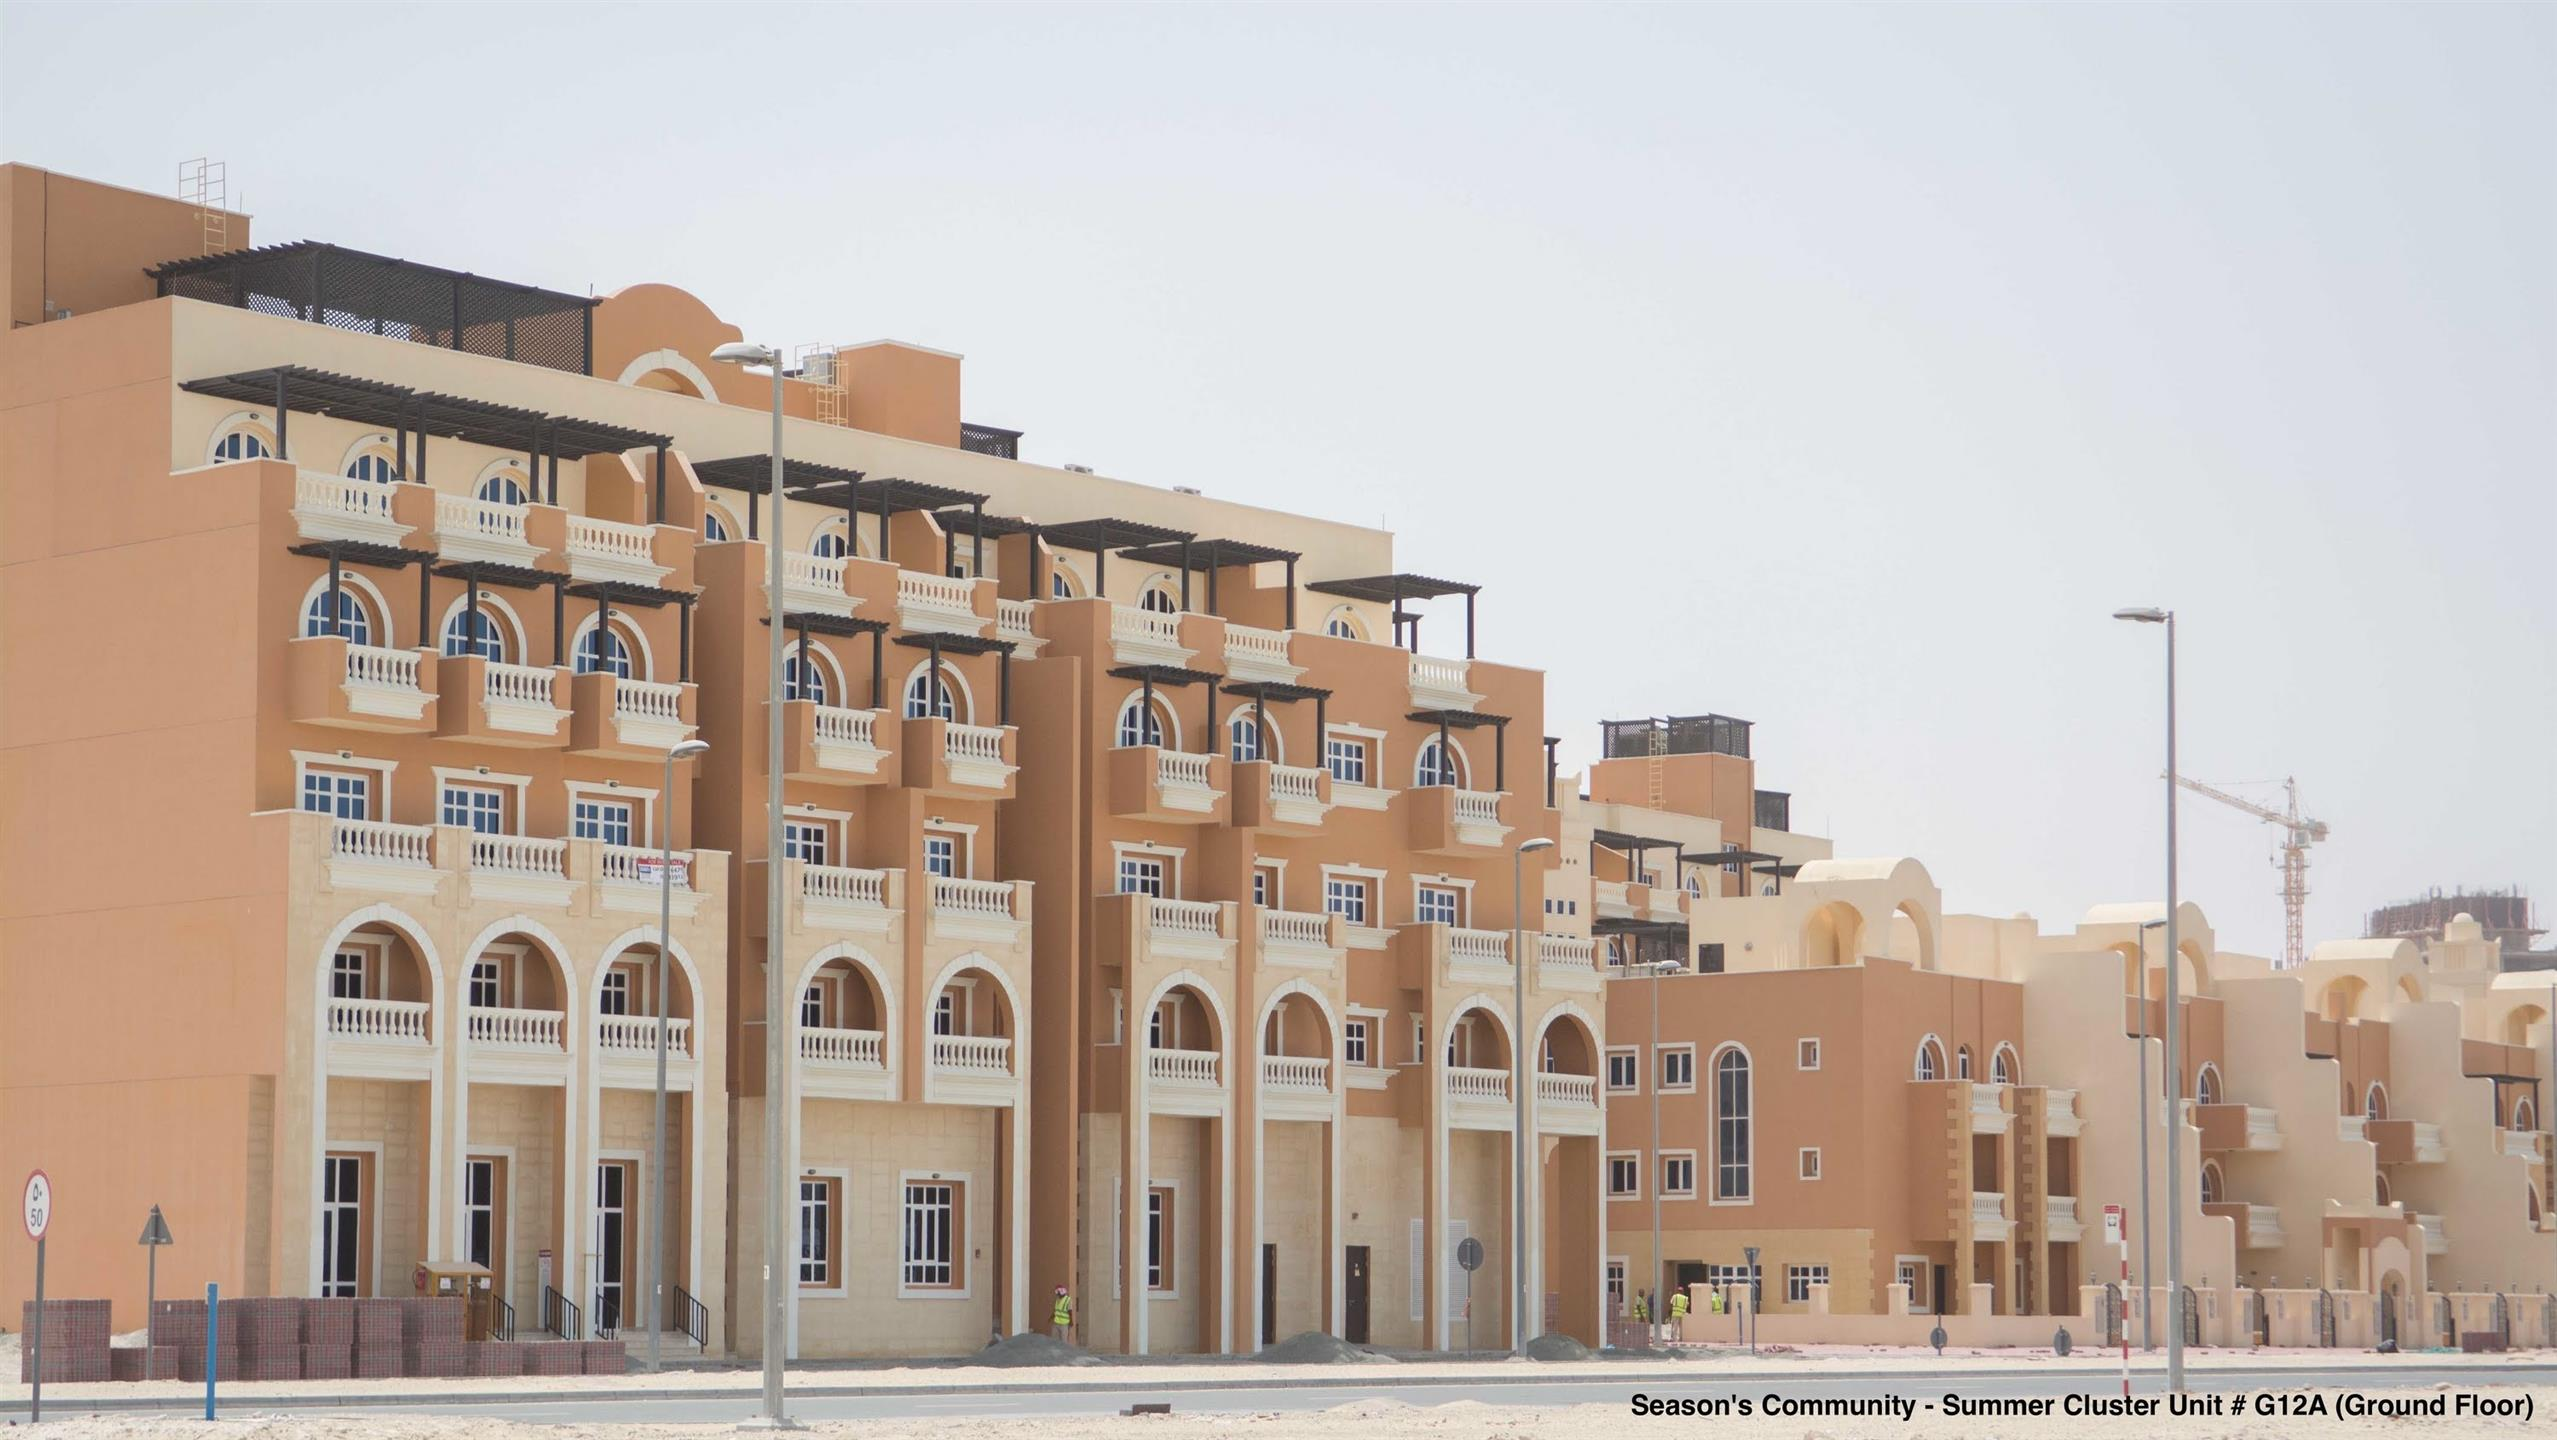 Residential Apartment/Condo, for Sale in United Arab Emirates, Dubai, Jumeirah Village Circle